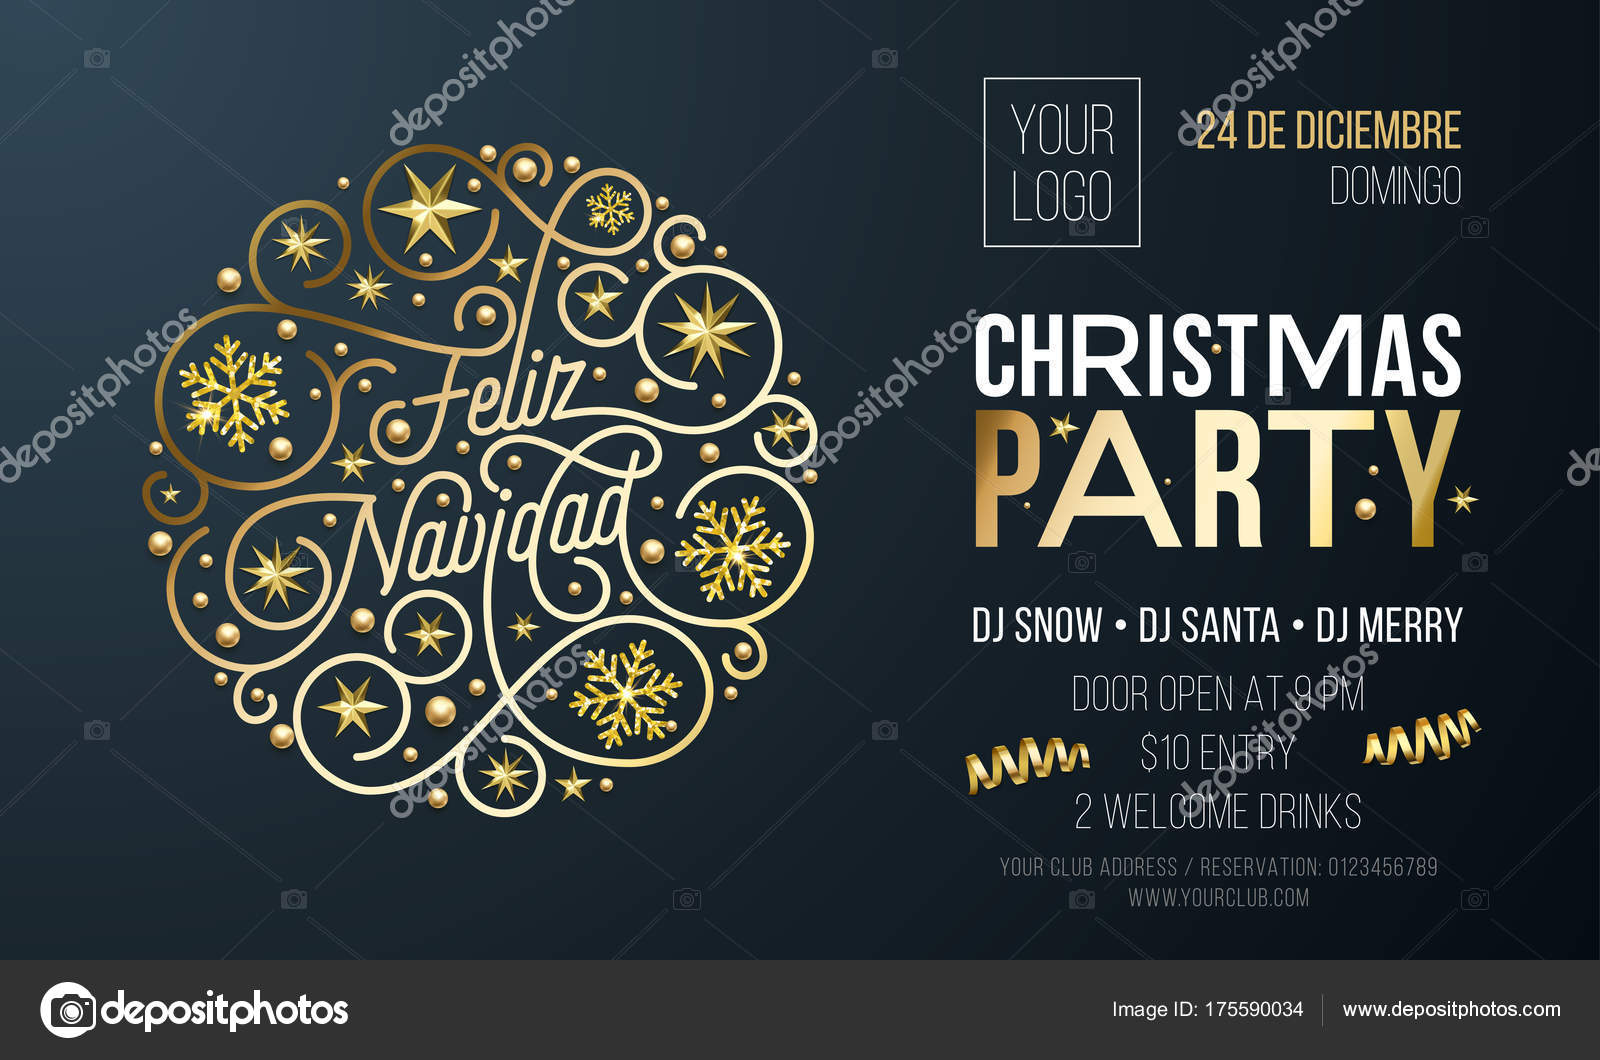 christmas party invitation for spanish feliz navidad holiday celebration design template vector new year or xmas corporate party invitation flyer of golden